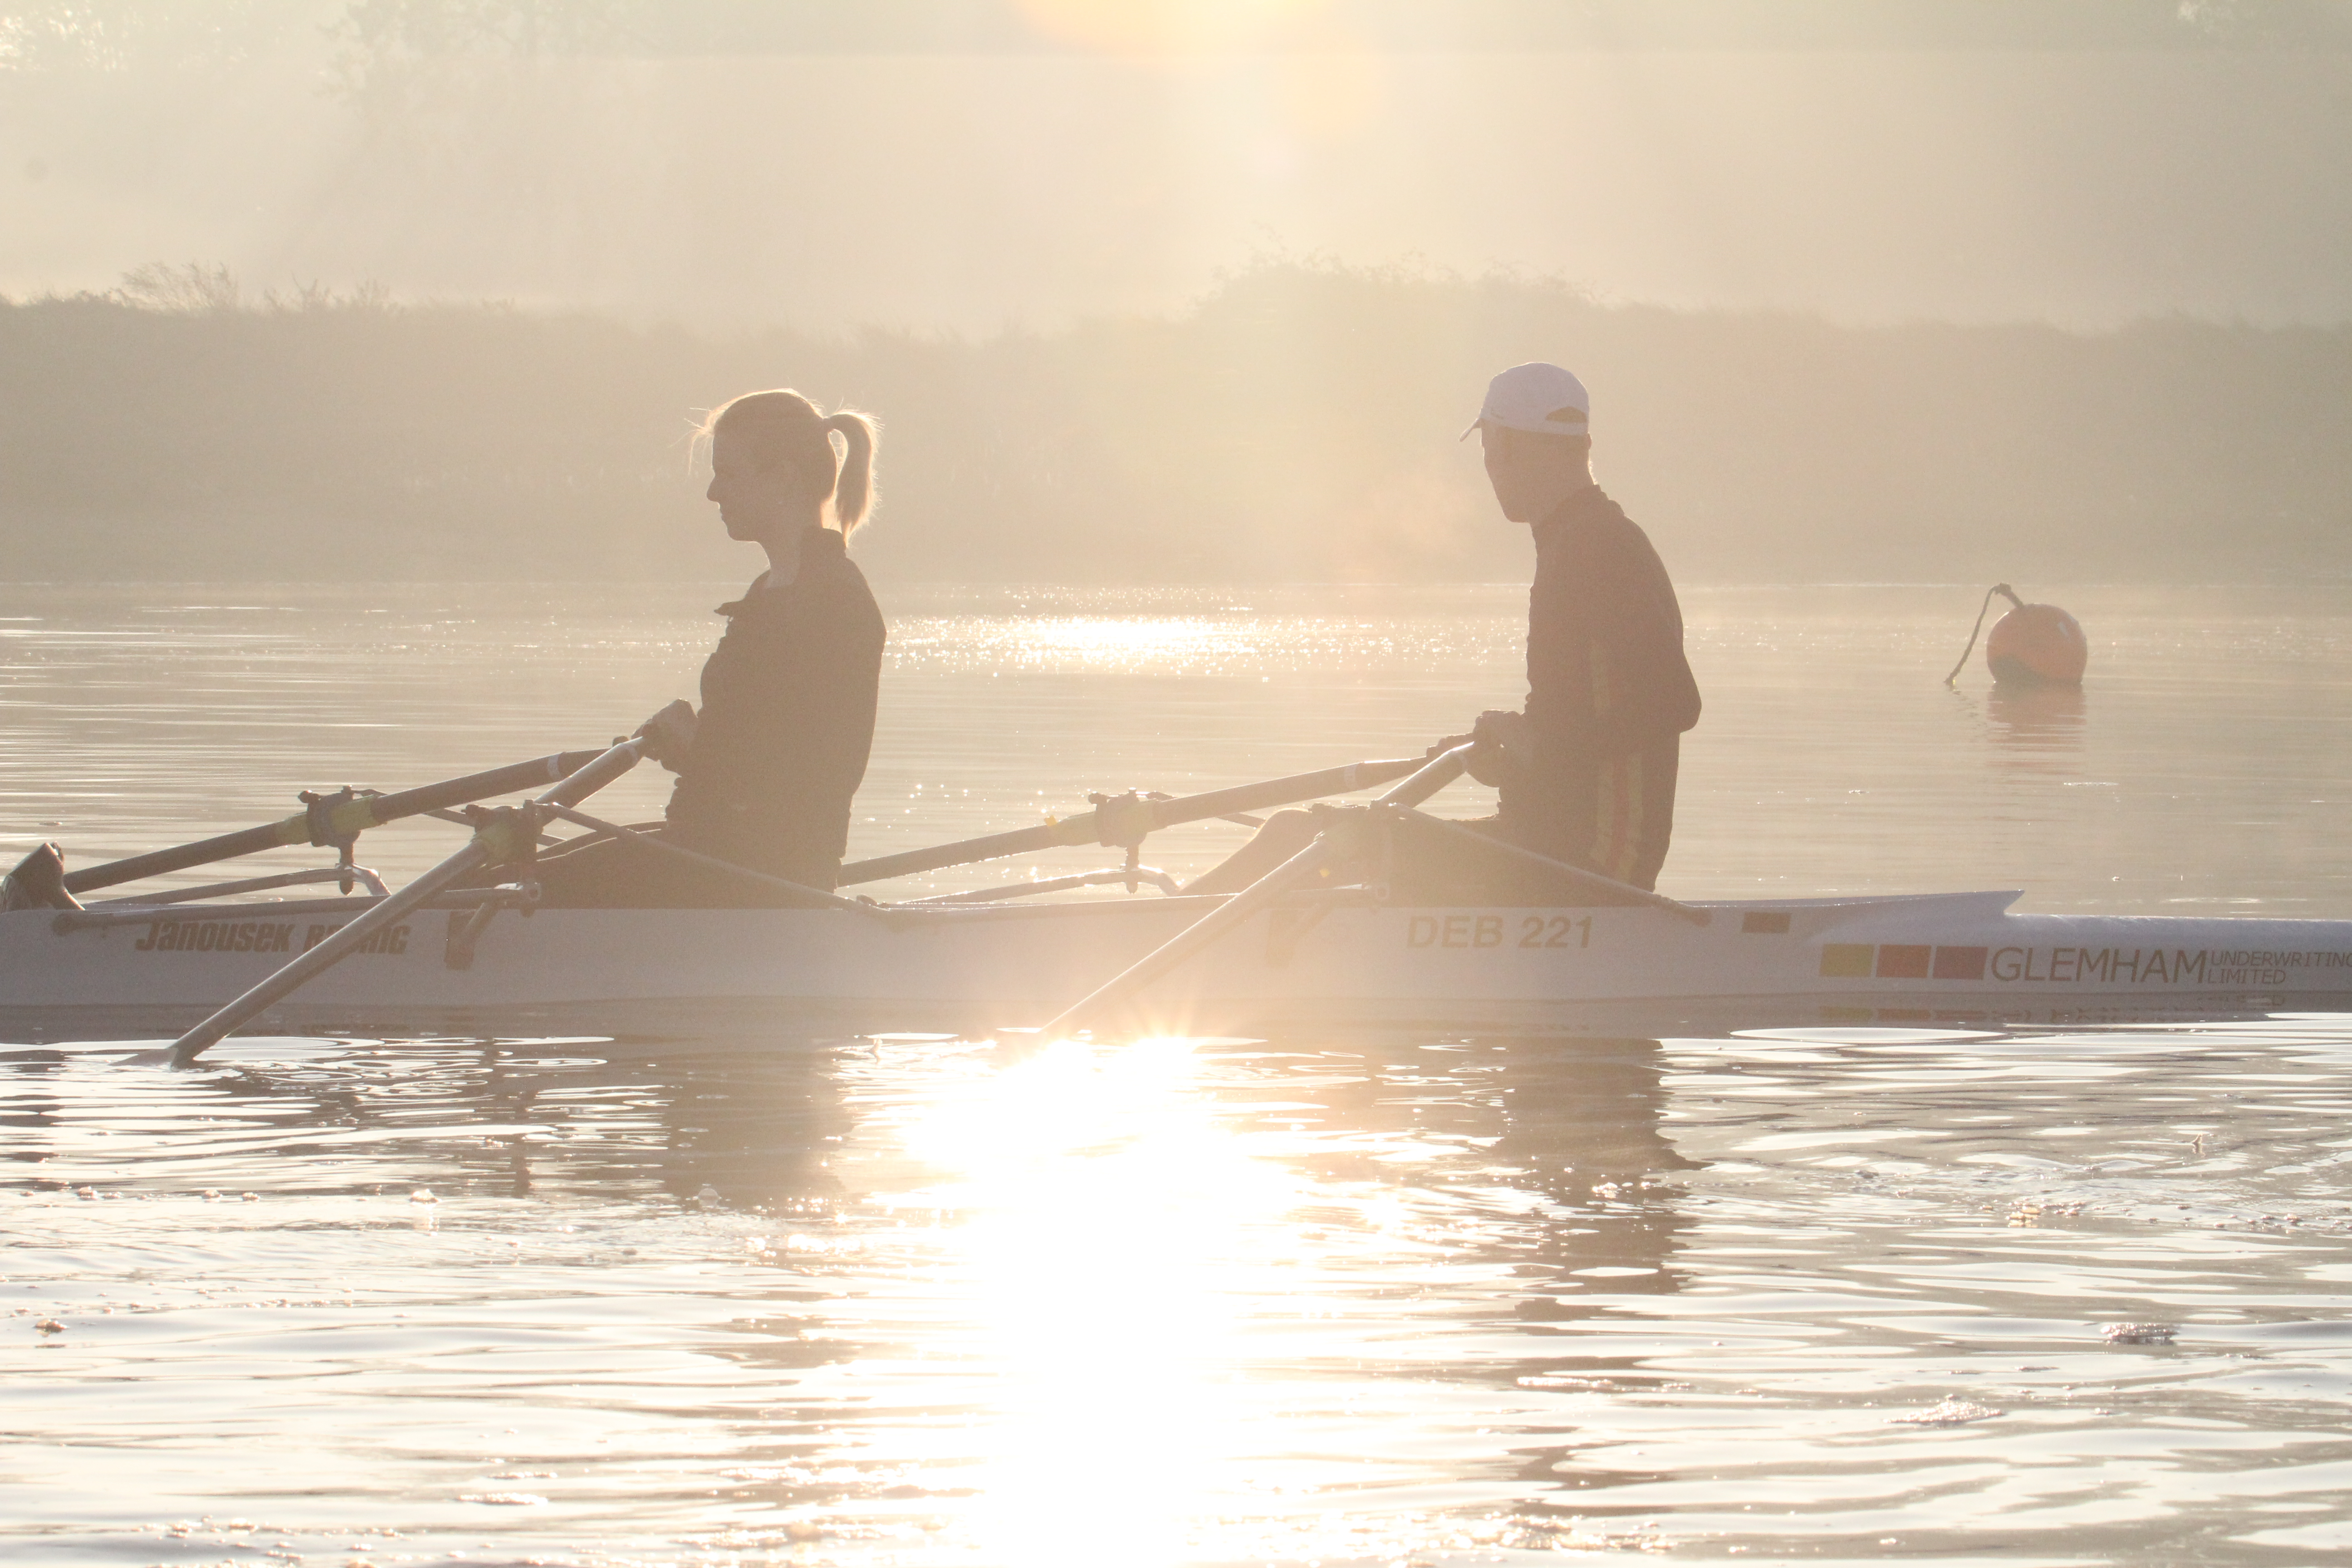 Sharing Good Practice – Learn to Row